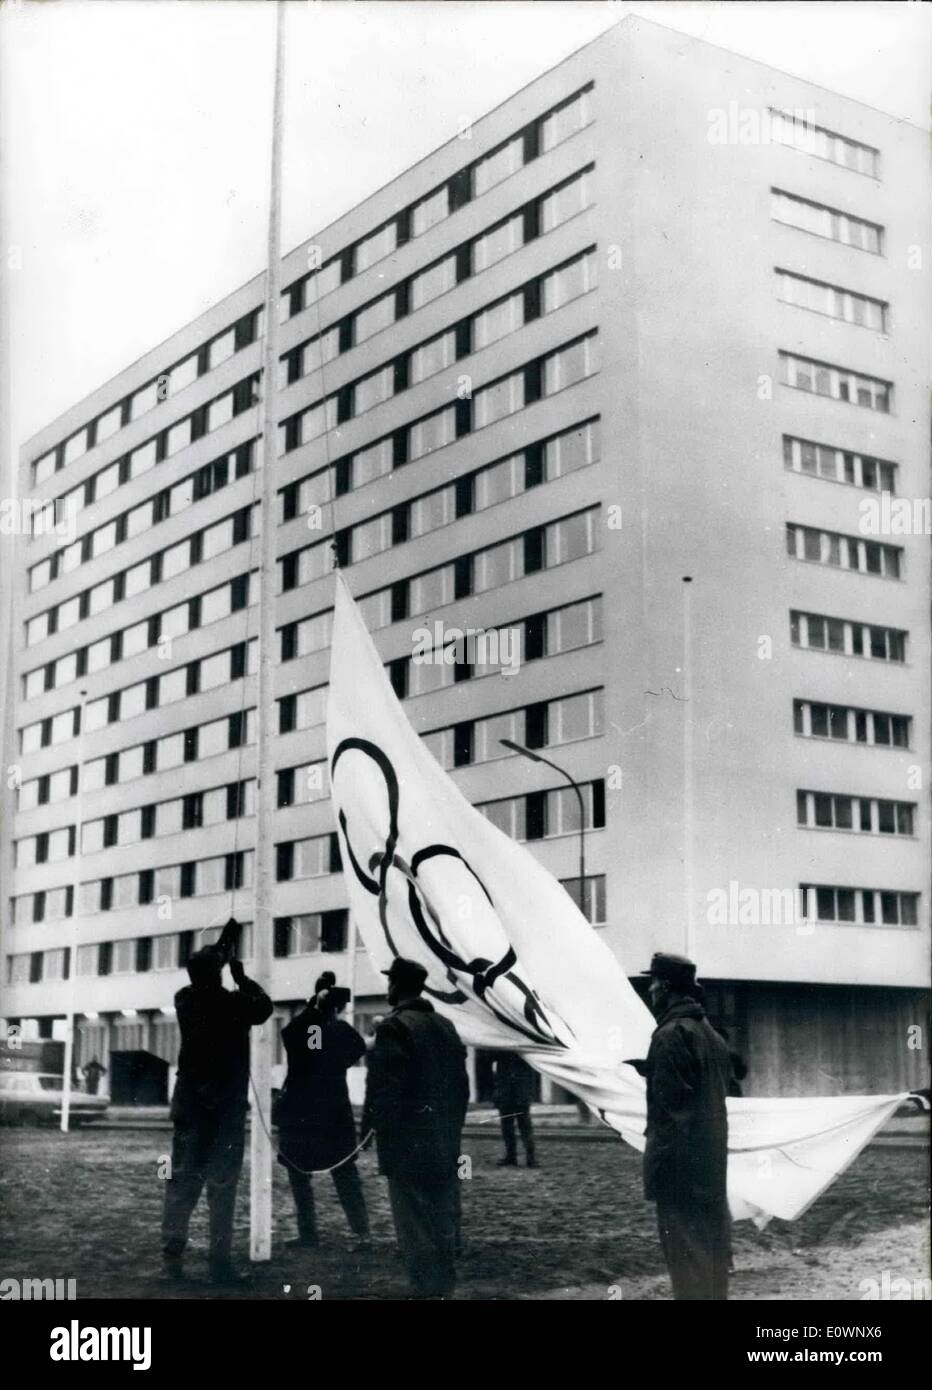 Jan. 01, 1964 - Official opened: Was on 15-1-64 the Olympic Village at Innsbruck. The Lord- Mayor of Innsbruck Dr Lugger presented the Key of the Olympic Village to professor Friedl Wolfgang, who is the General -Secretary of the Organization- Kommity and says in his speech, that he is hoping real sportive sense will rule in this village. Picture Shows: The Olympic Flag goes in the height in the Olympic village (at the top) and the over giving of the key. In the middle Dr - Stock Image